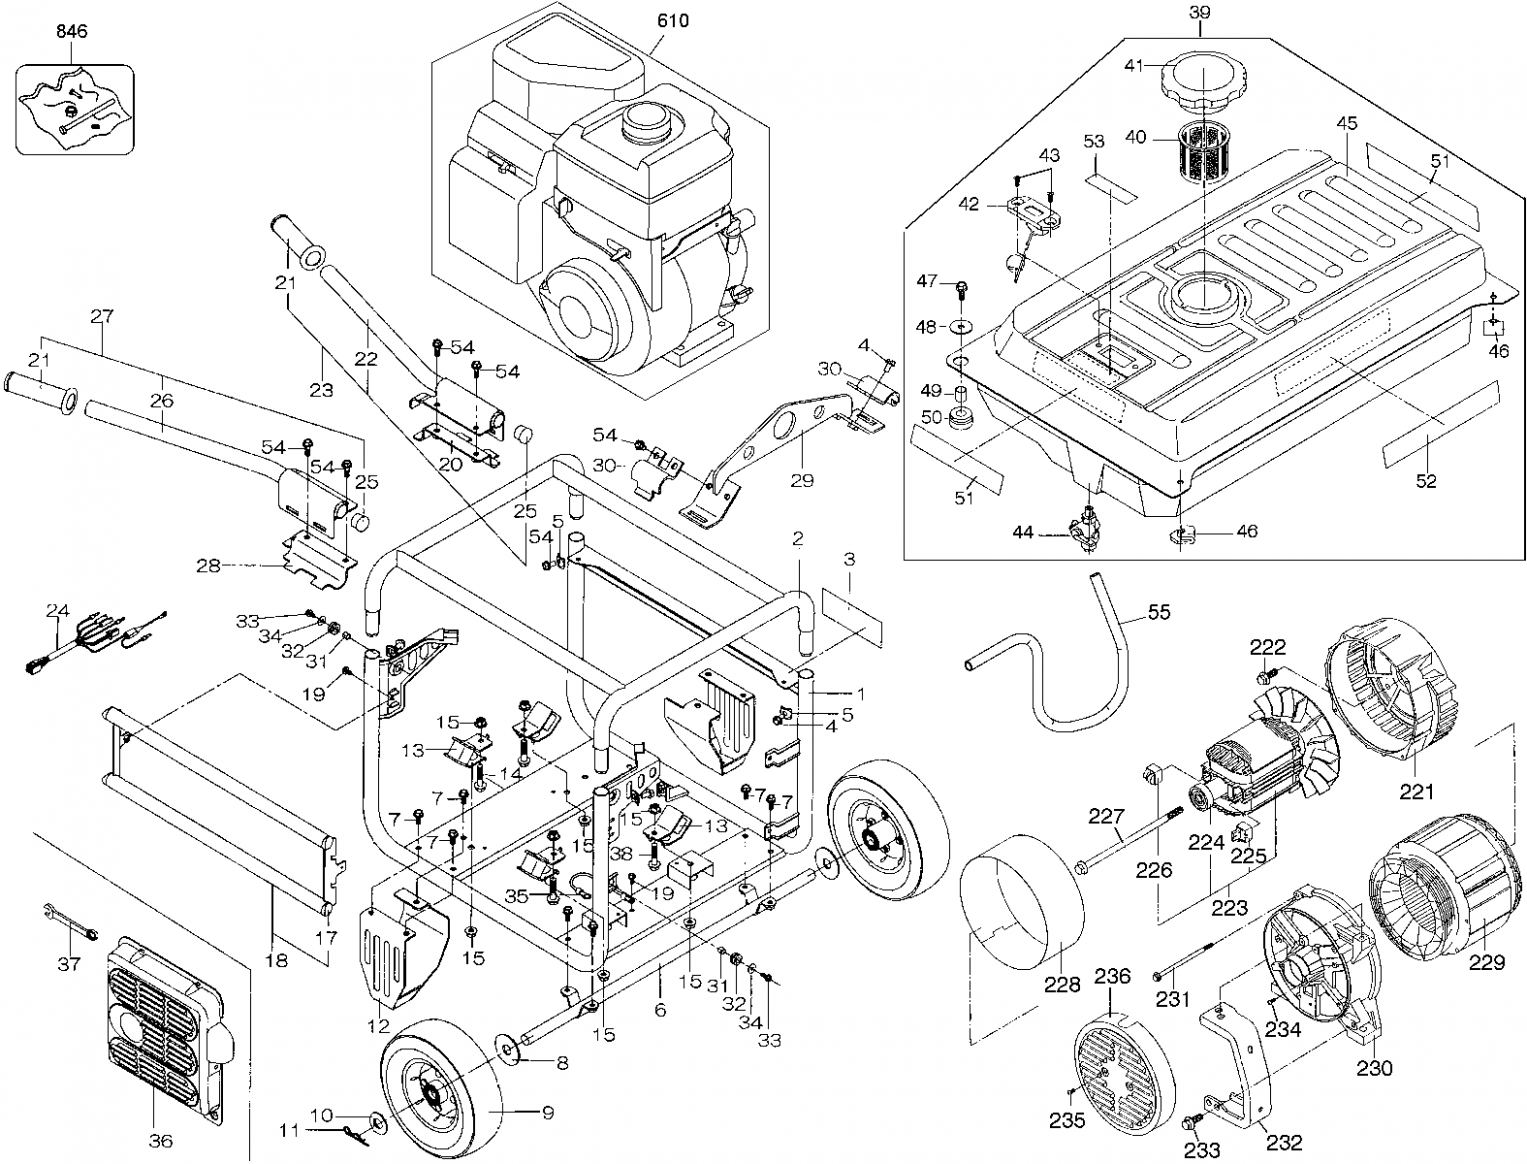 Yamaha Timberwolf 250 Wiring Diagram